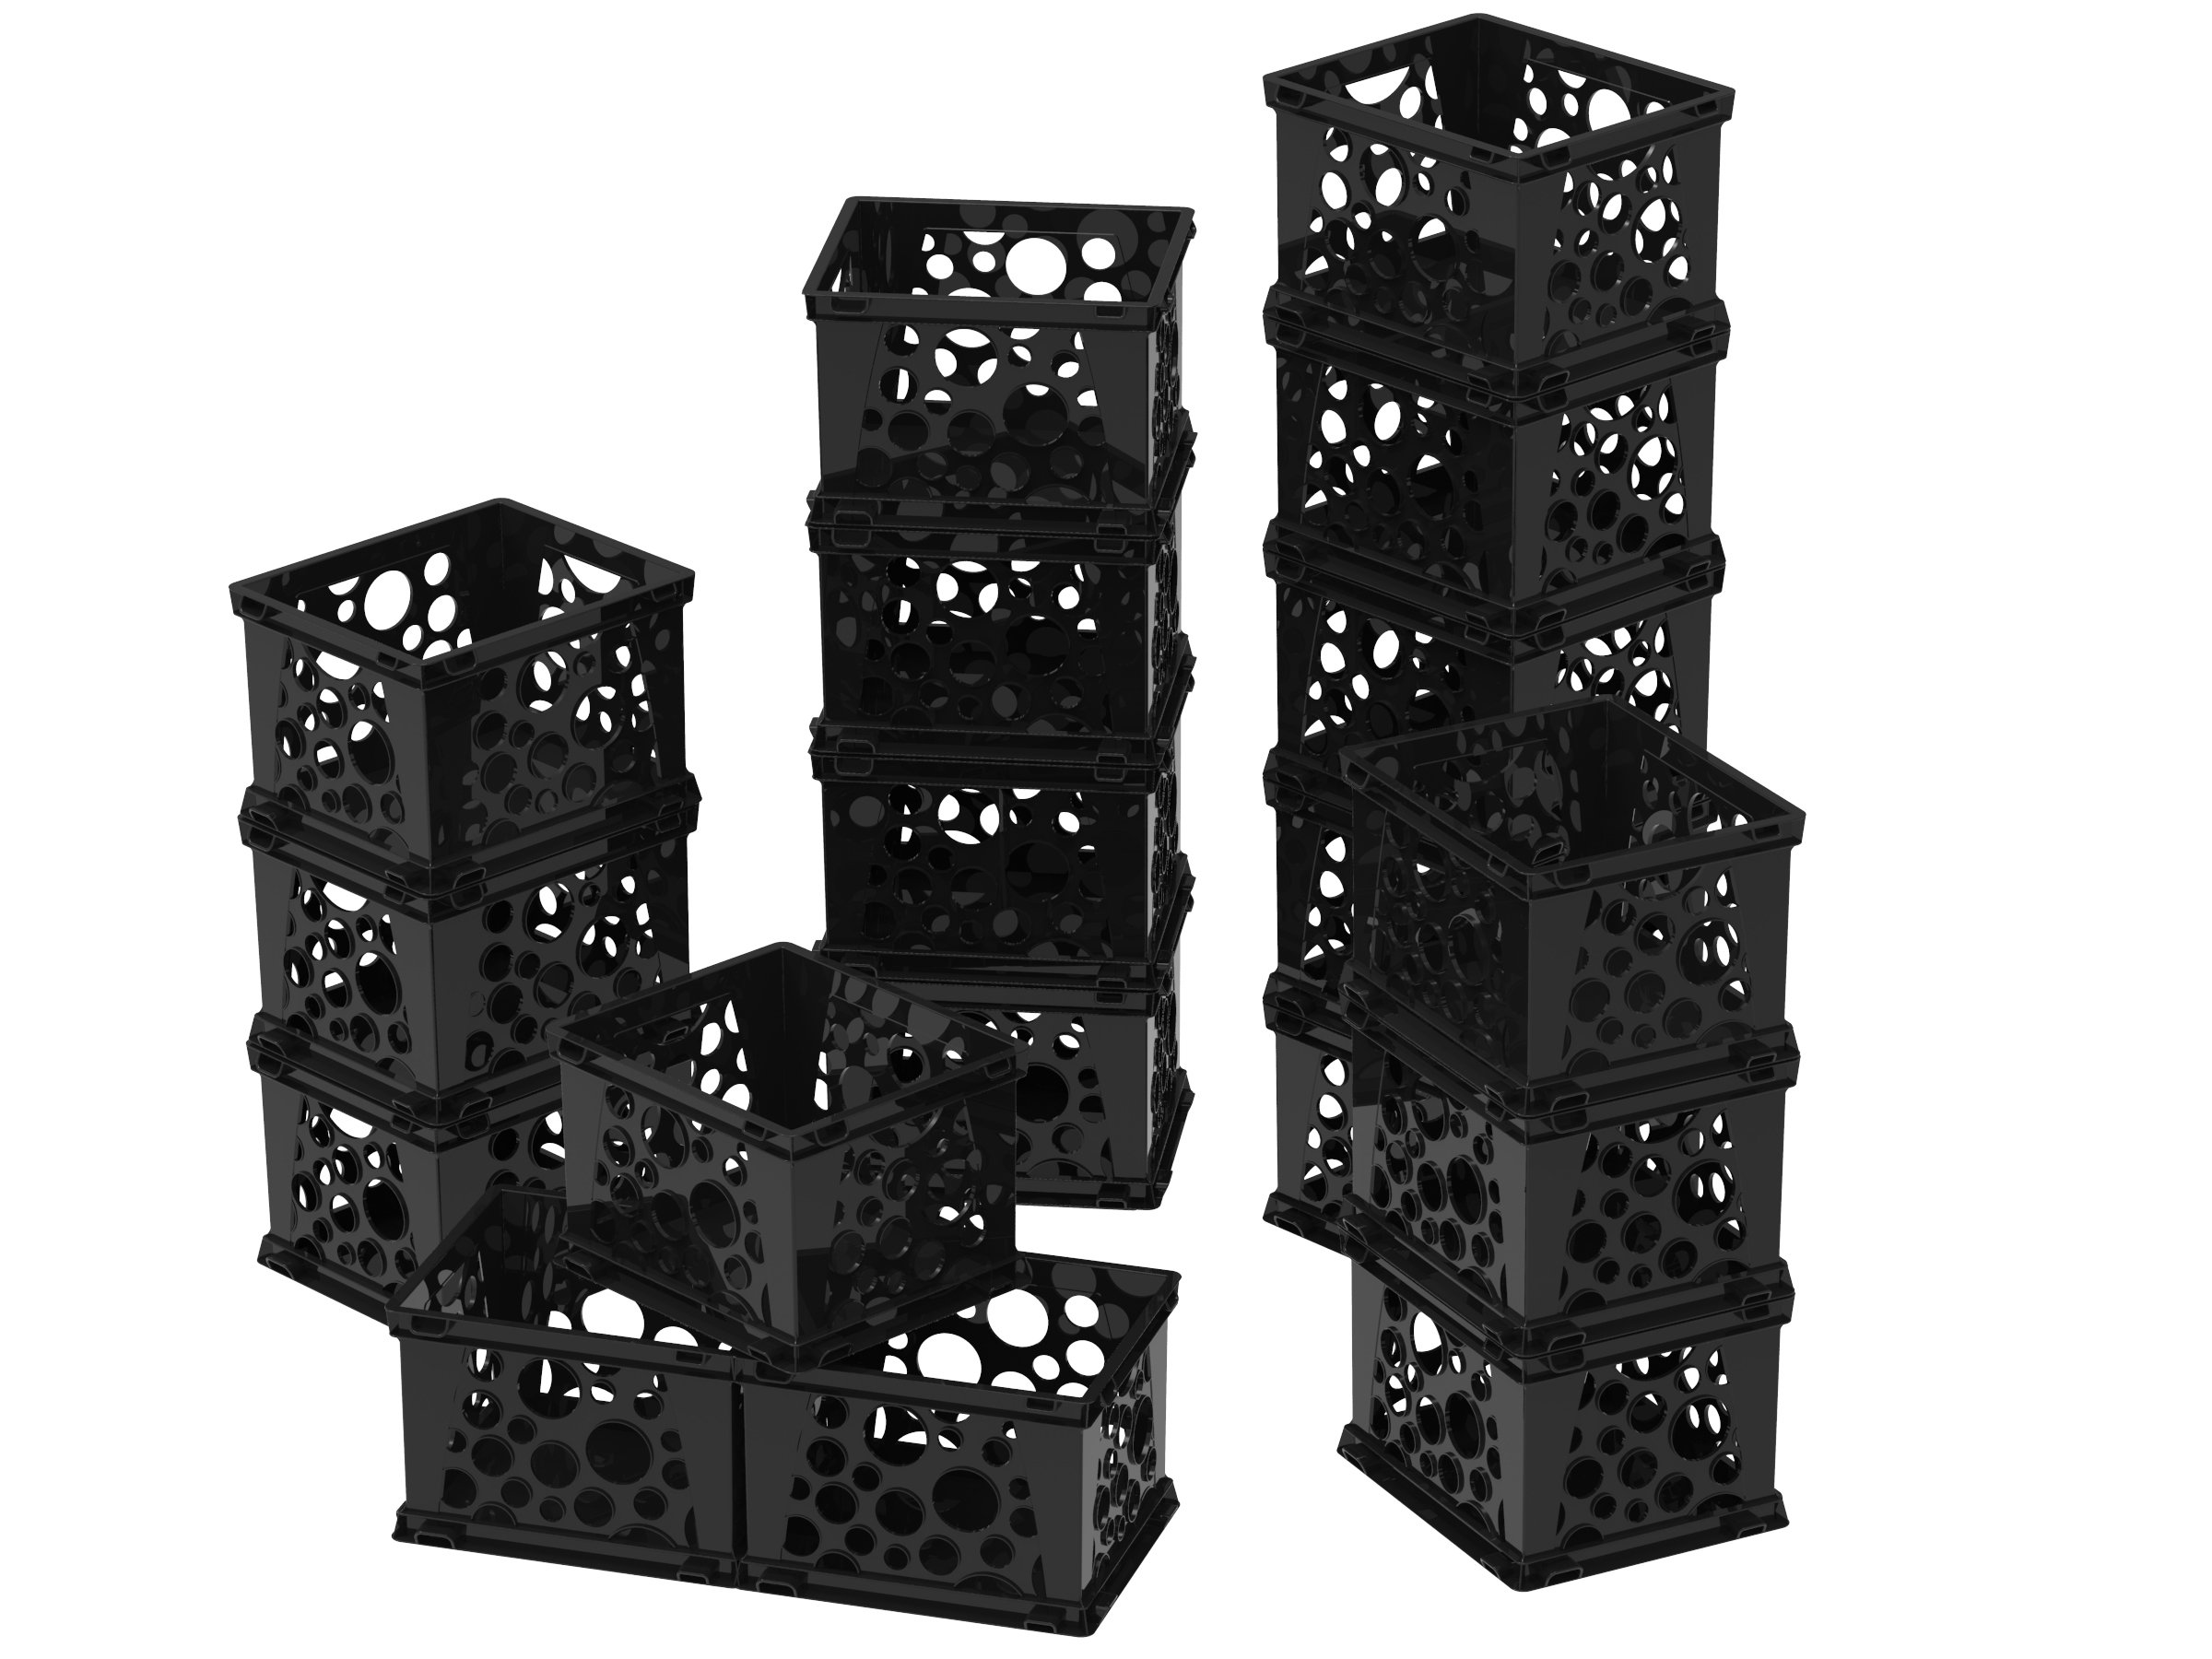 Storex Micro Crate, 6.75 x 5.8 x 4.8'', Black, Case of 18 (63101U18C)